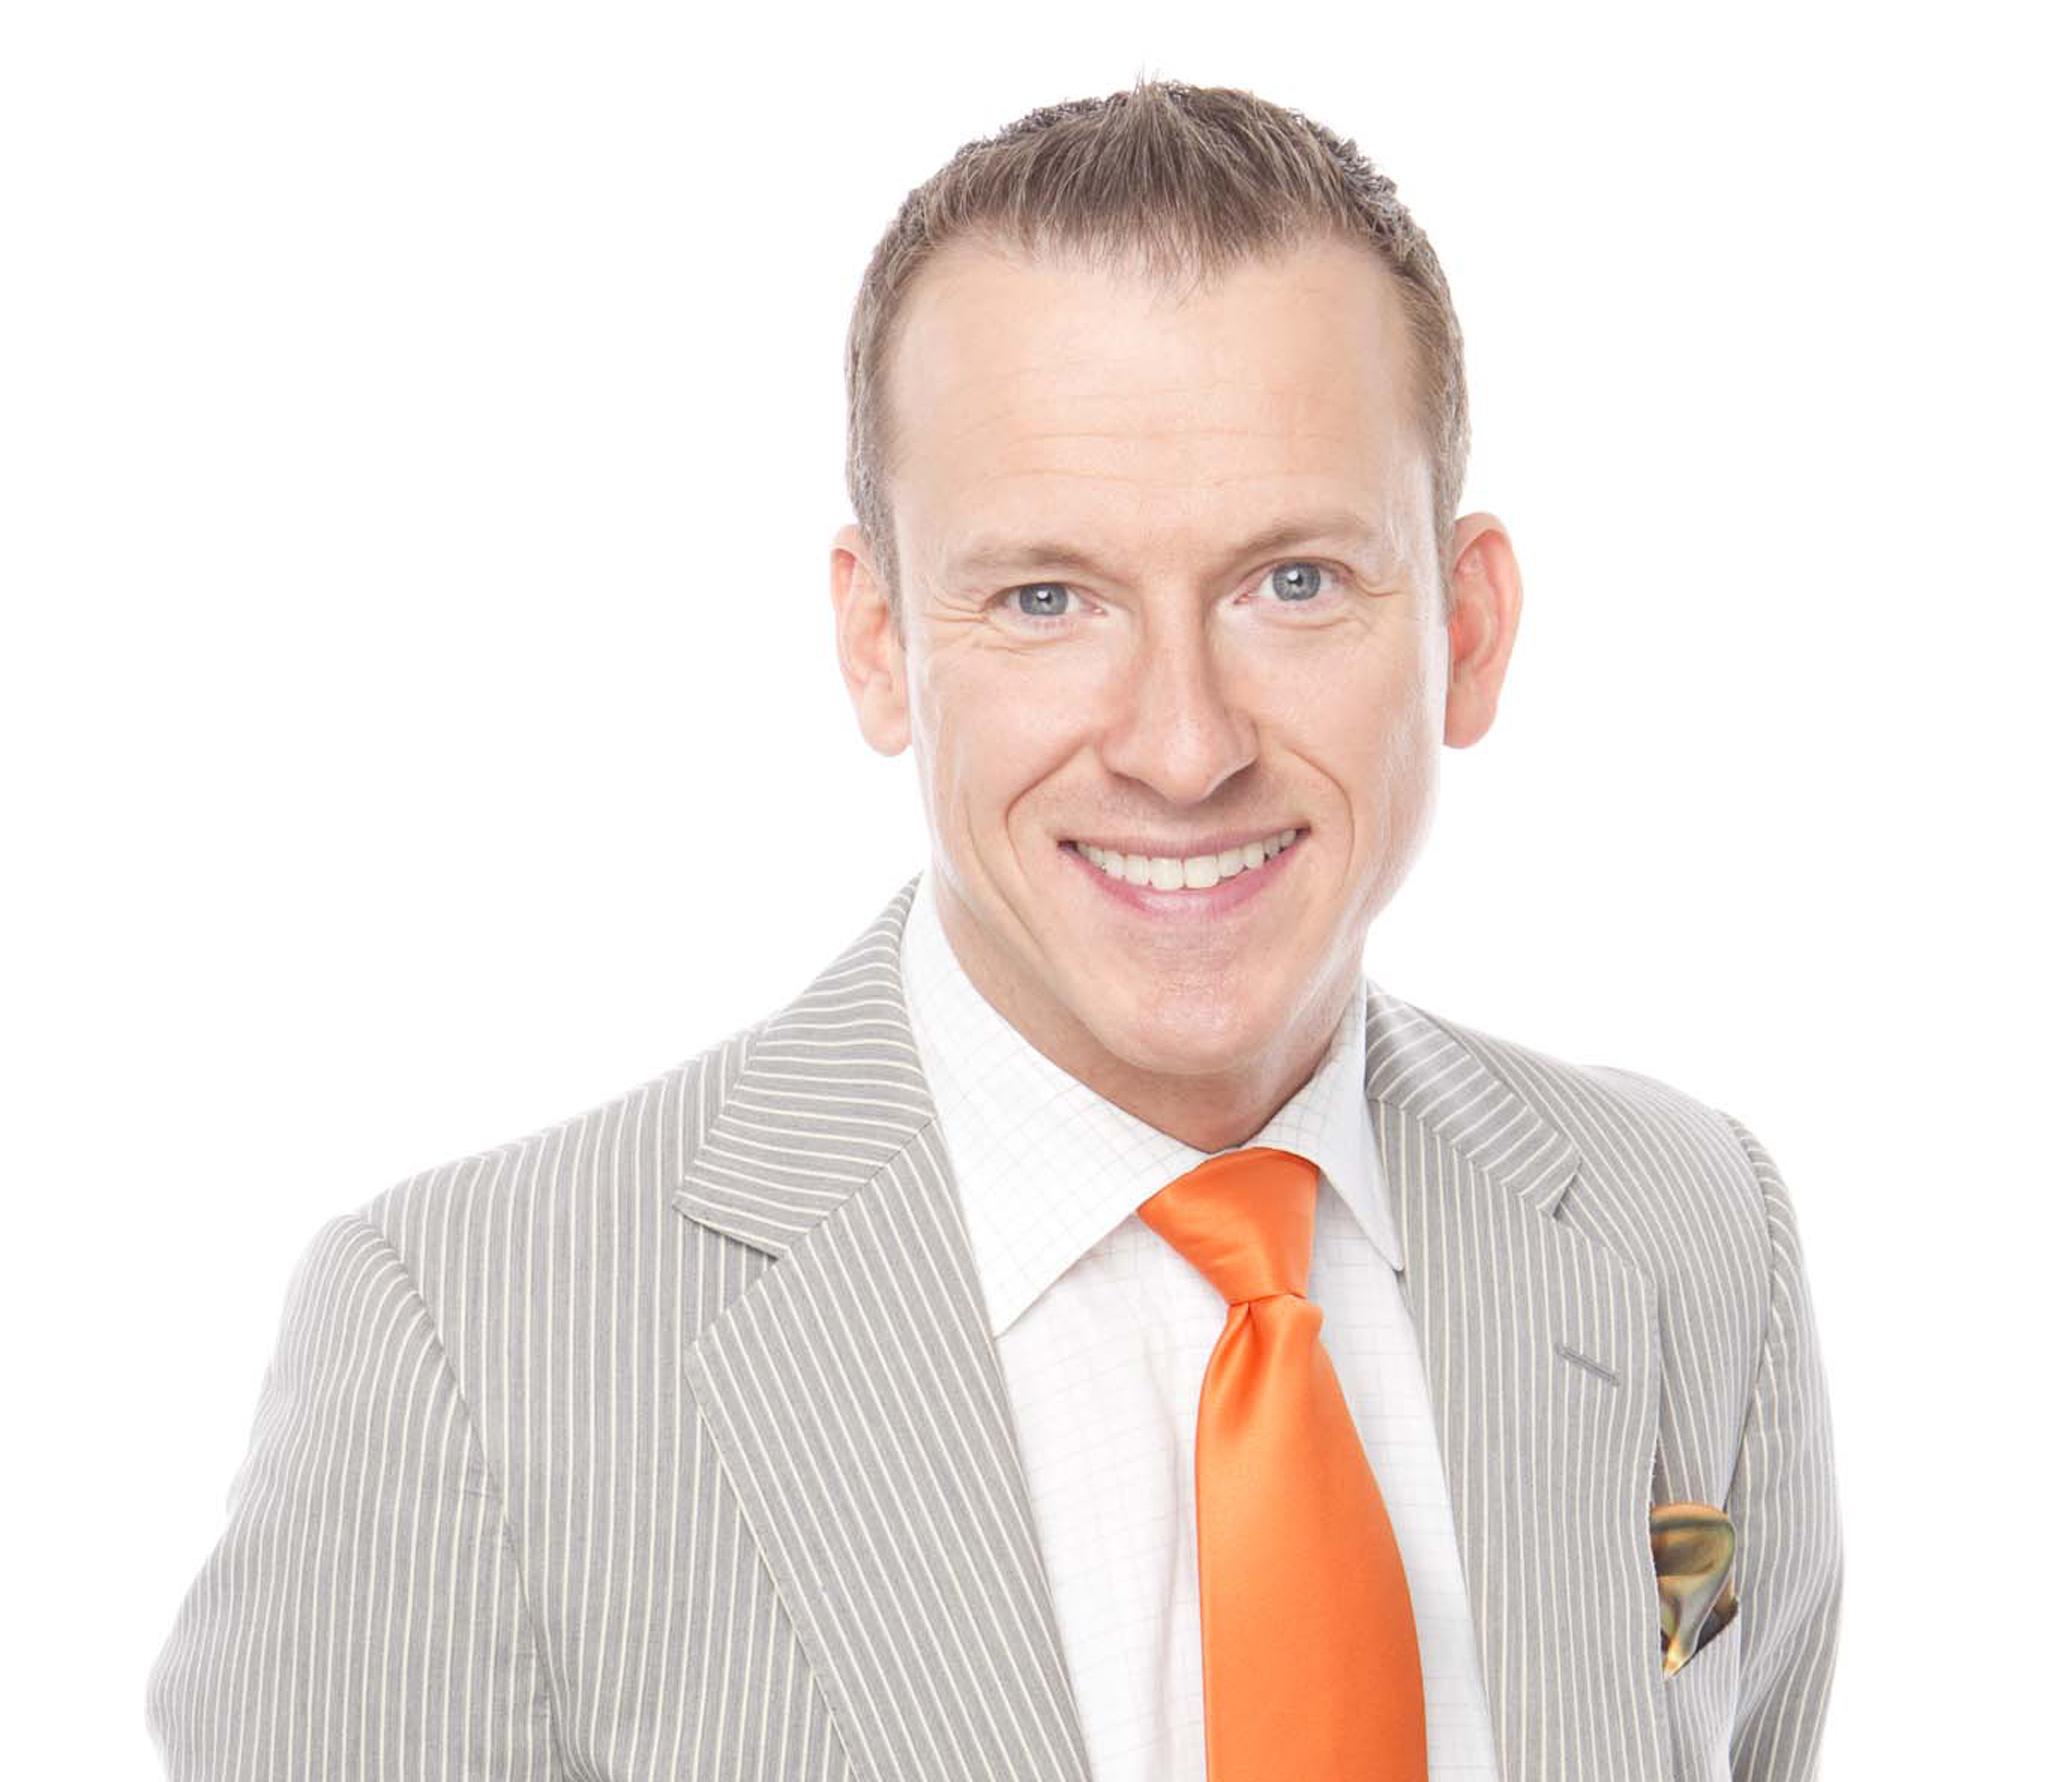 ron clark Welcome to rca the ron clark academy is a model school with a vision to transform classrooms around the world by demonstrating transformative methods and techniques that are embraced and replicated everywhere.